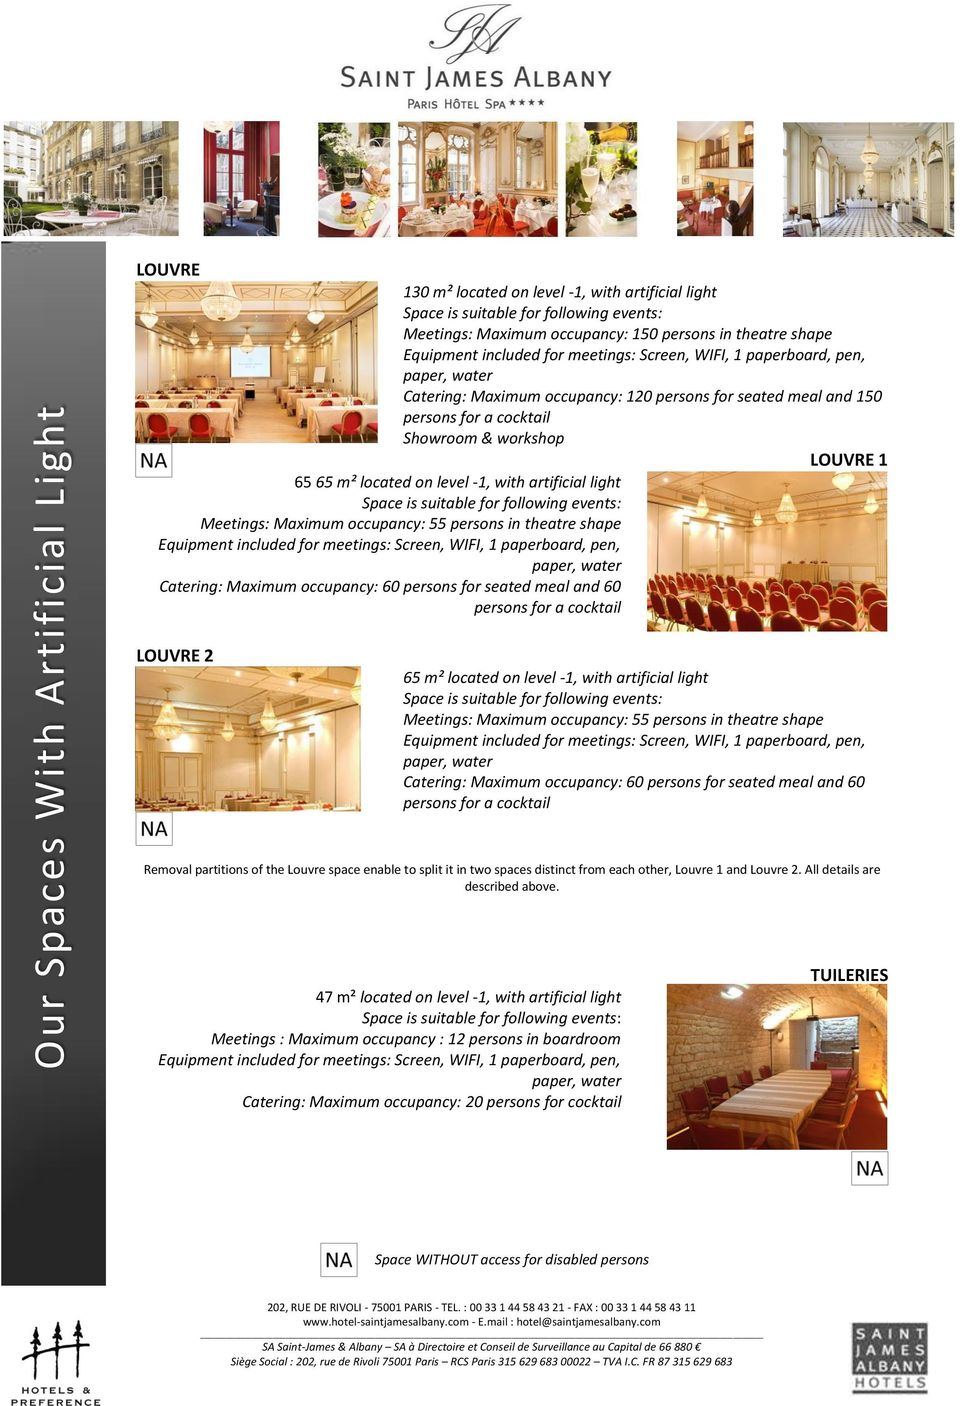 seated meal and 60 LOUVRE 2 65 m² located on level -1, with artificial light Meetings: Maximum occupancy: 55 persons in theatre shape Catering: Maximum occupancy: 60 persons for seated meal and 60